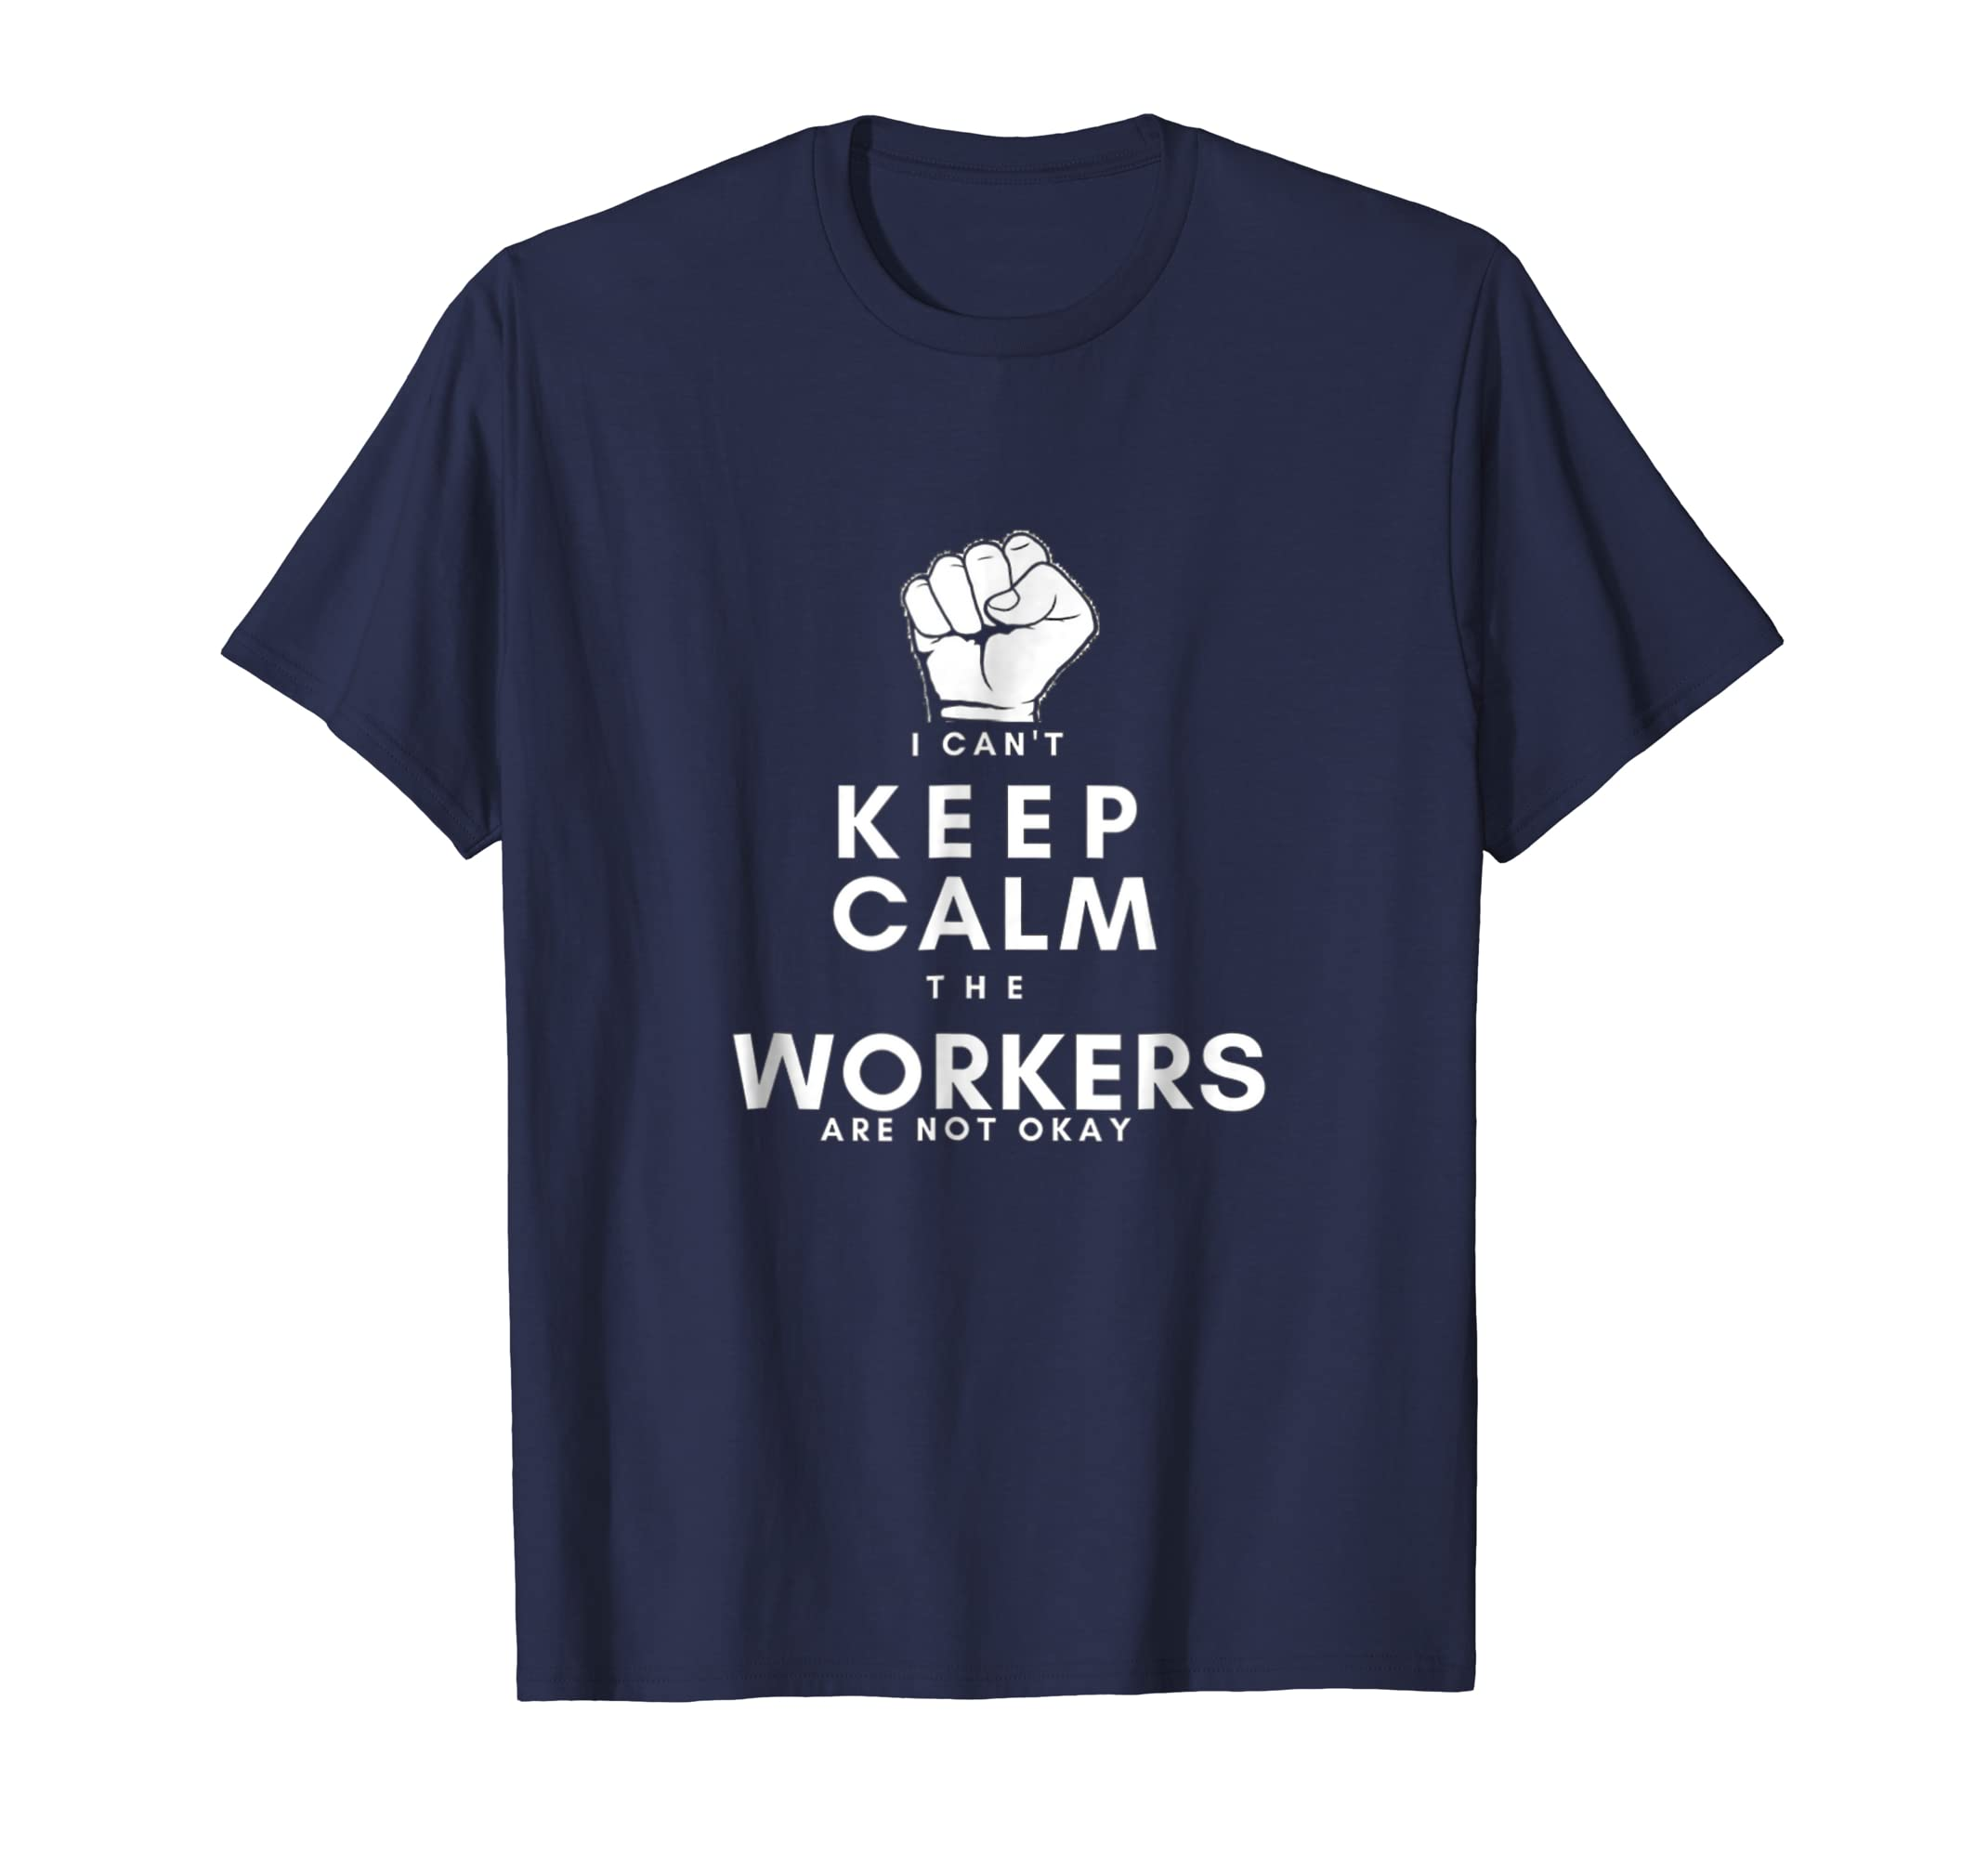 Labor Day t-shirt-Ican't keep calm the workers are not okay-AZP